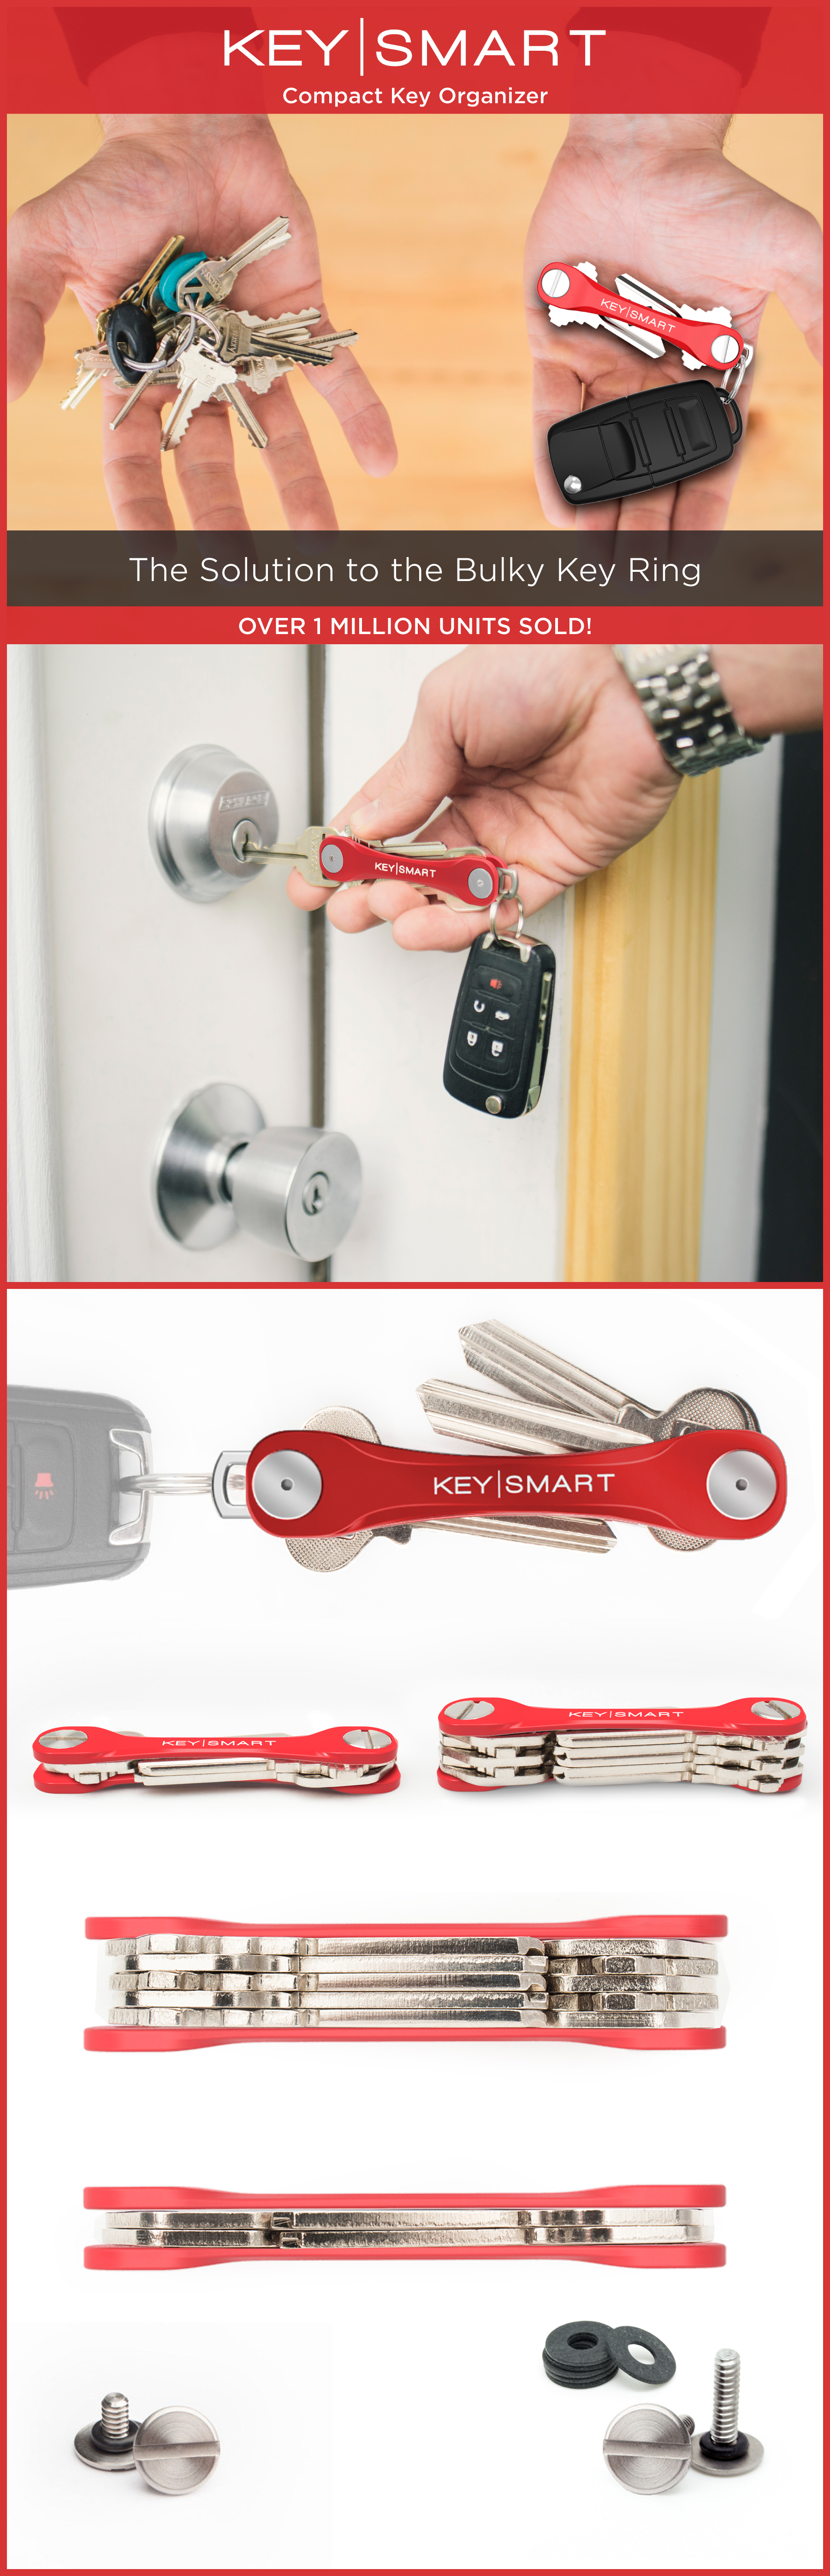 Upgrade and organize your key ring with this awesome key holder! Its super minimal design combined with lightweight materials makes for a much more convenient way to unlock your doors. There's a whole bunch of different attachments to customize your own. Use coupon code ORGANIZE15 this month for 15% off!